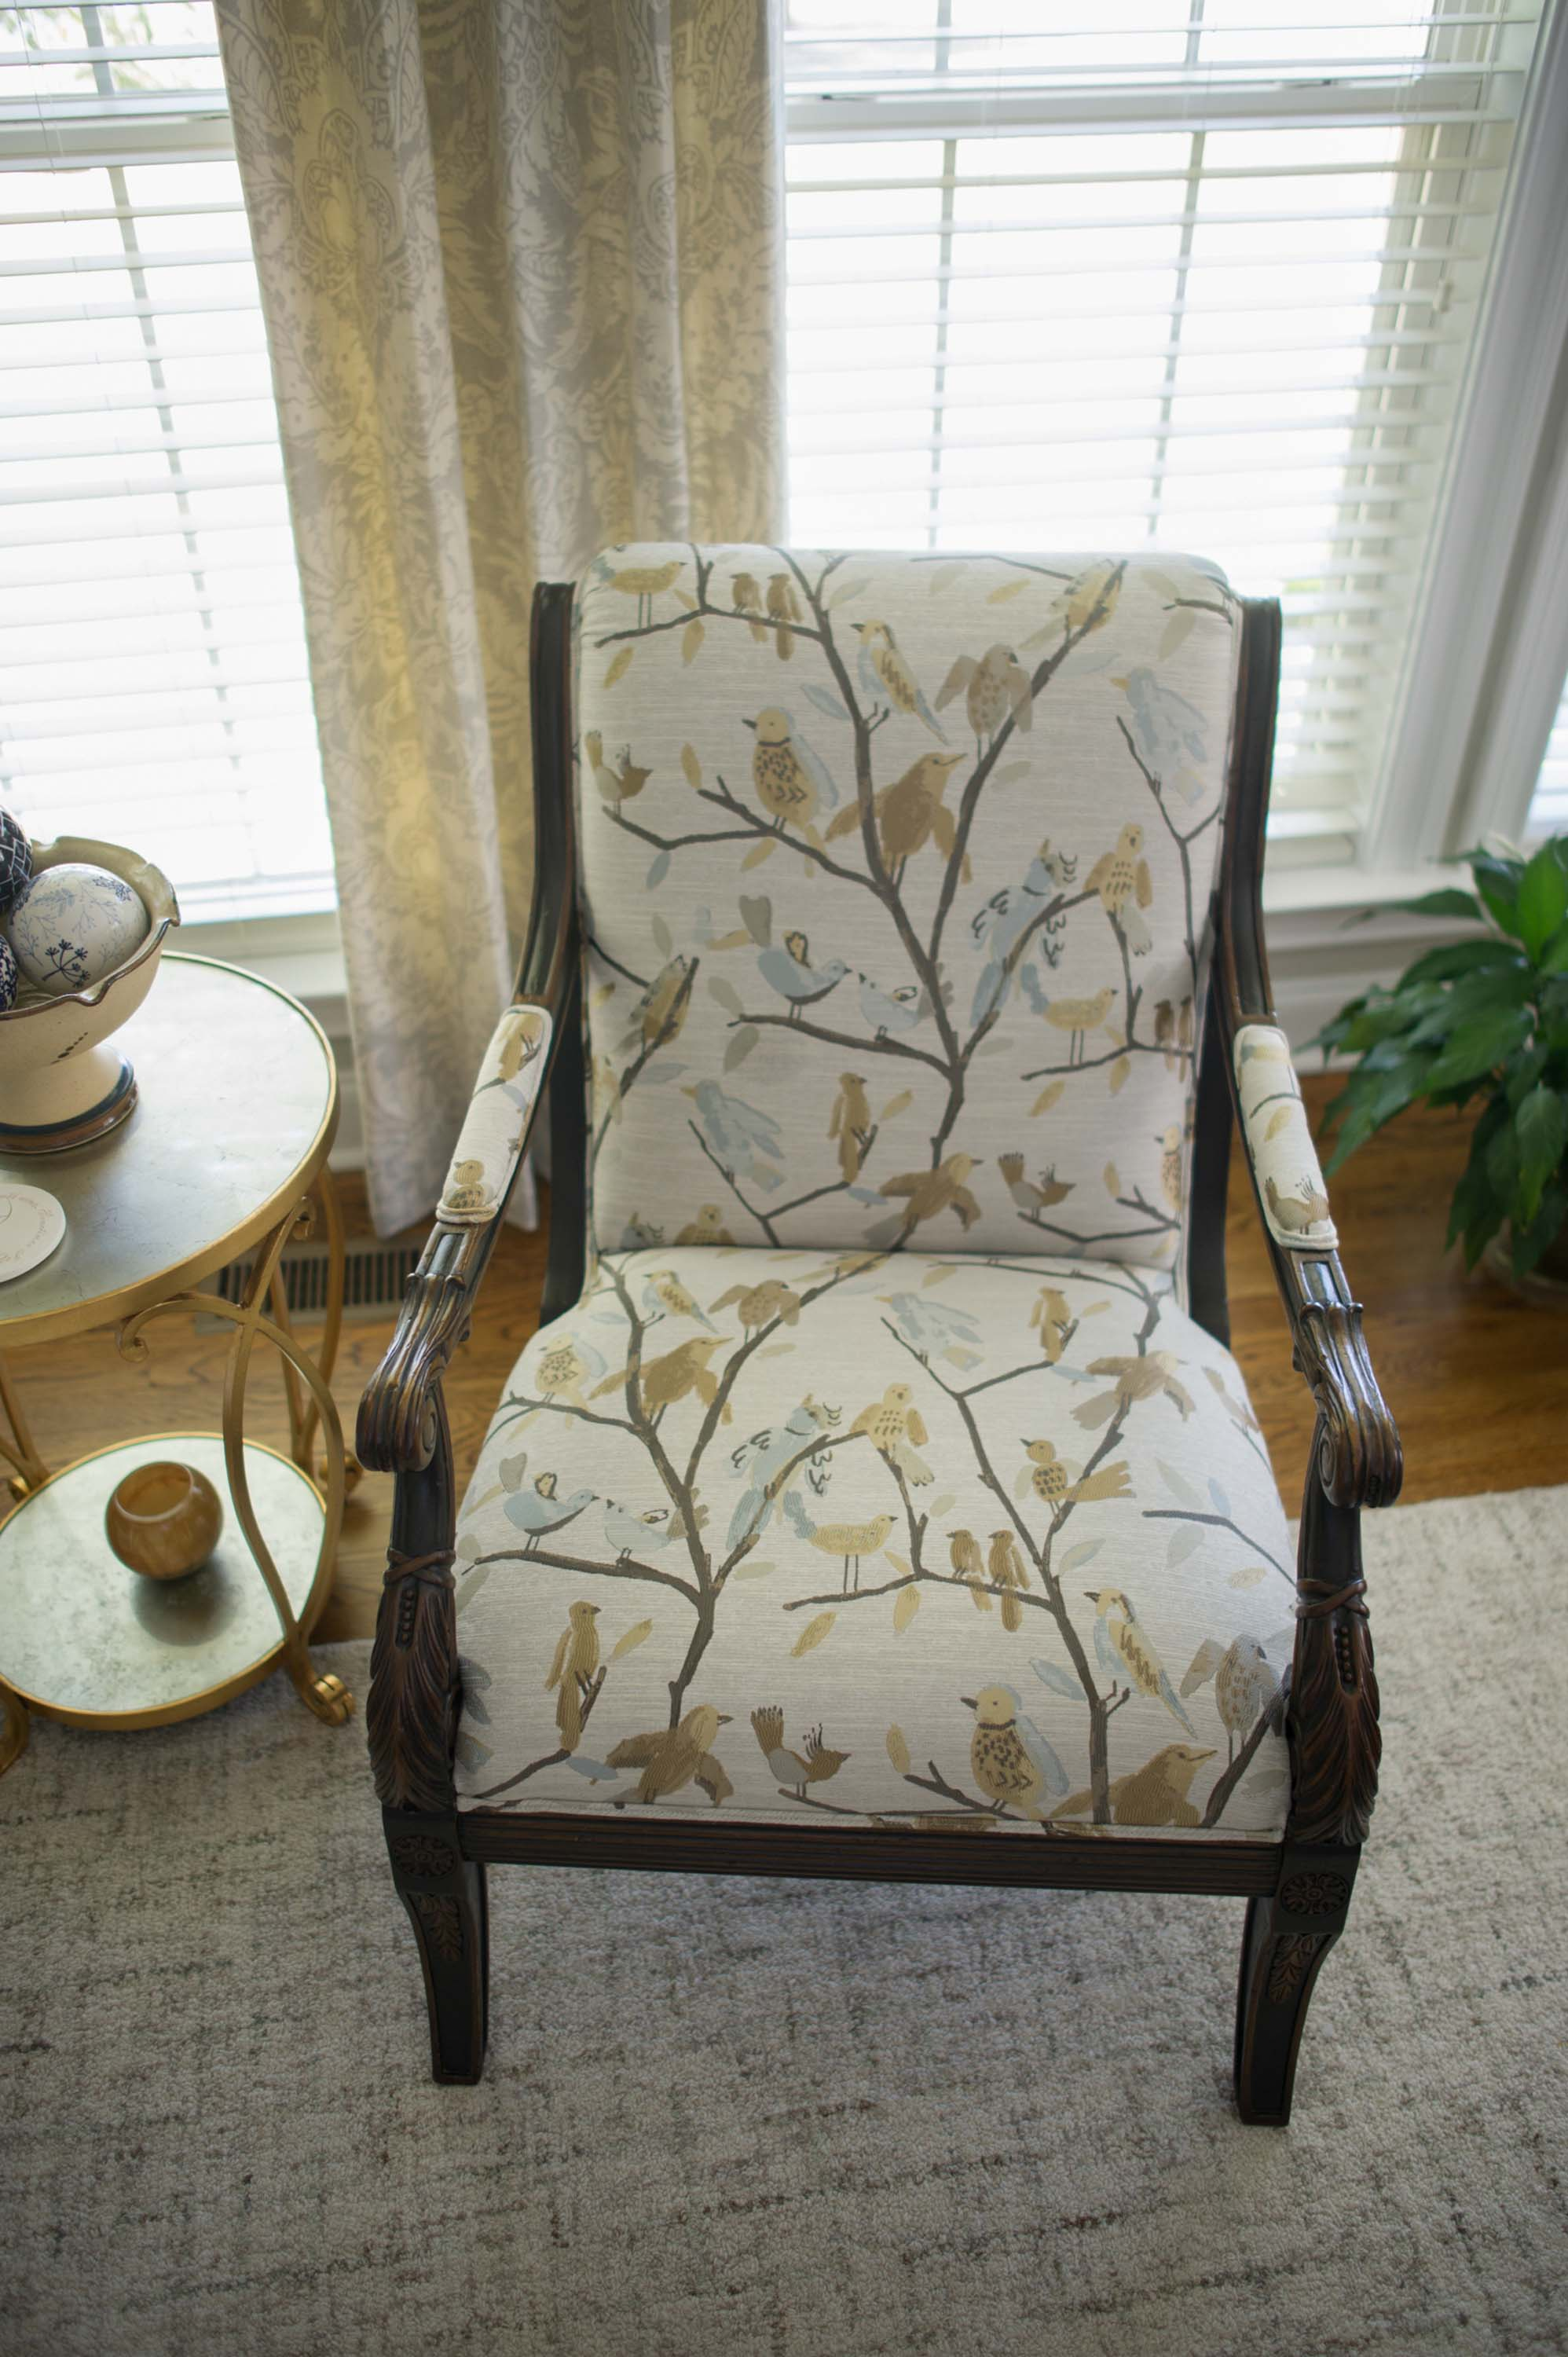 Wooden arm chair with soft seat and floral print